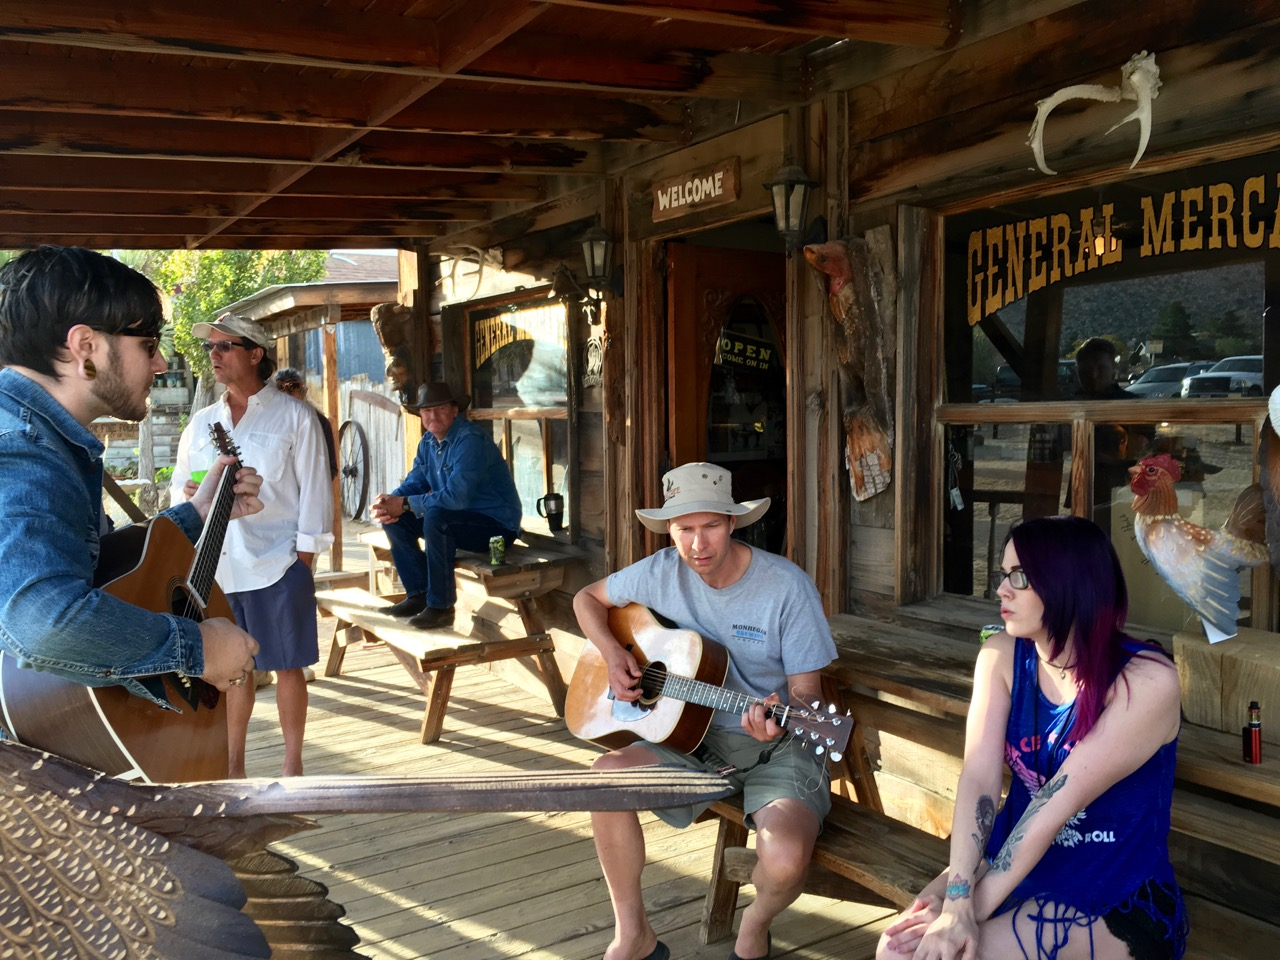 Two men playing guitar, woman singing outside Chaparrosa Outfitters, Pioneertown